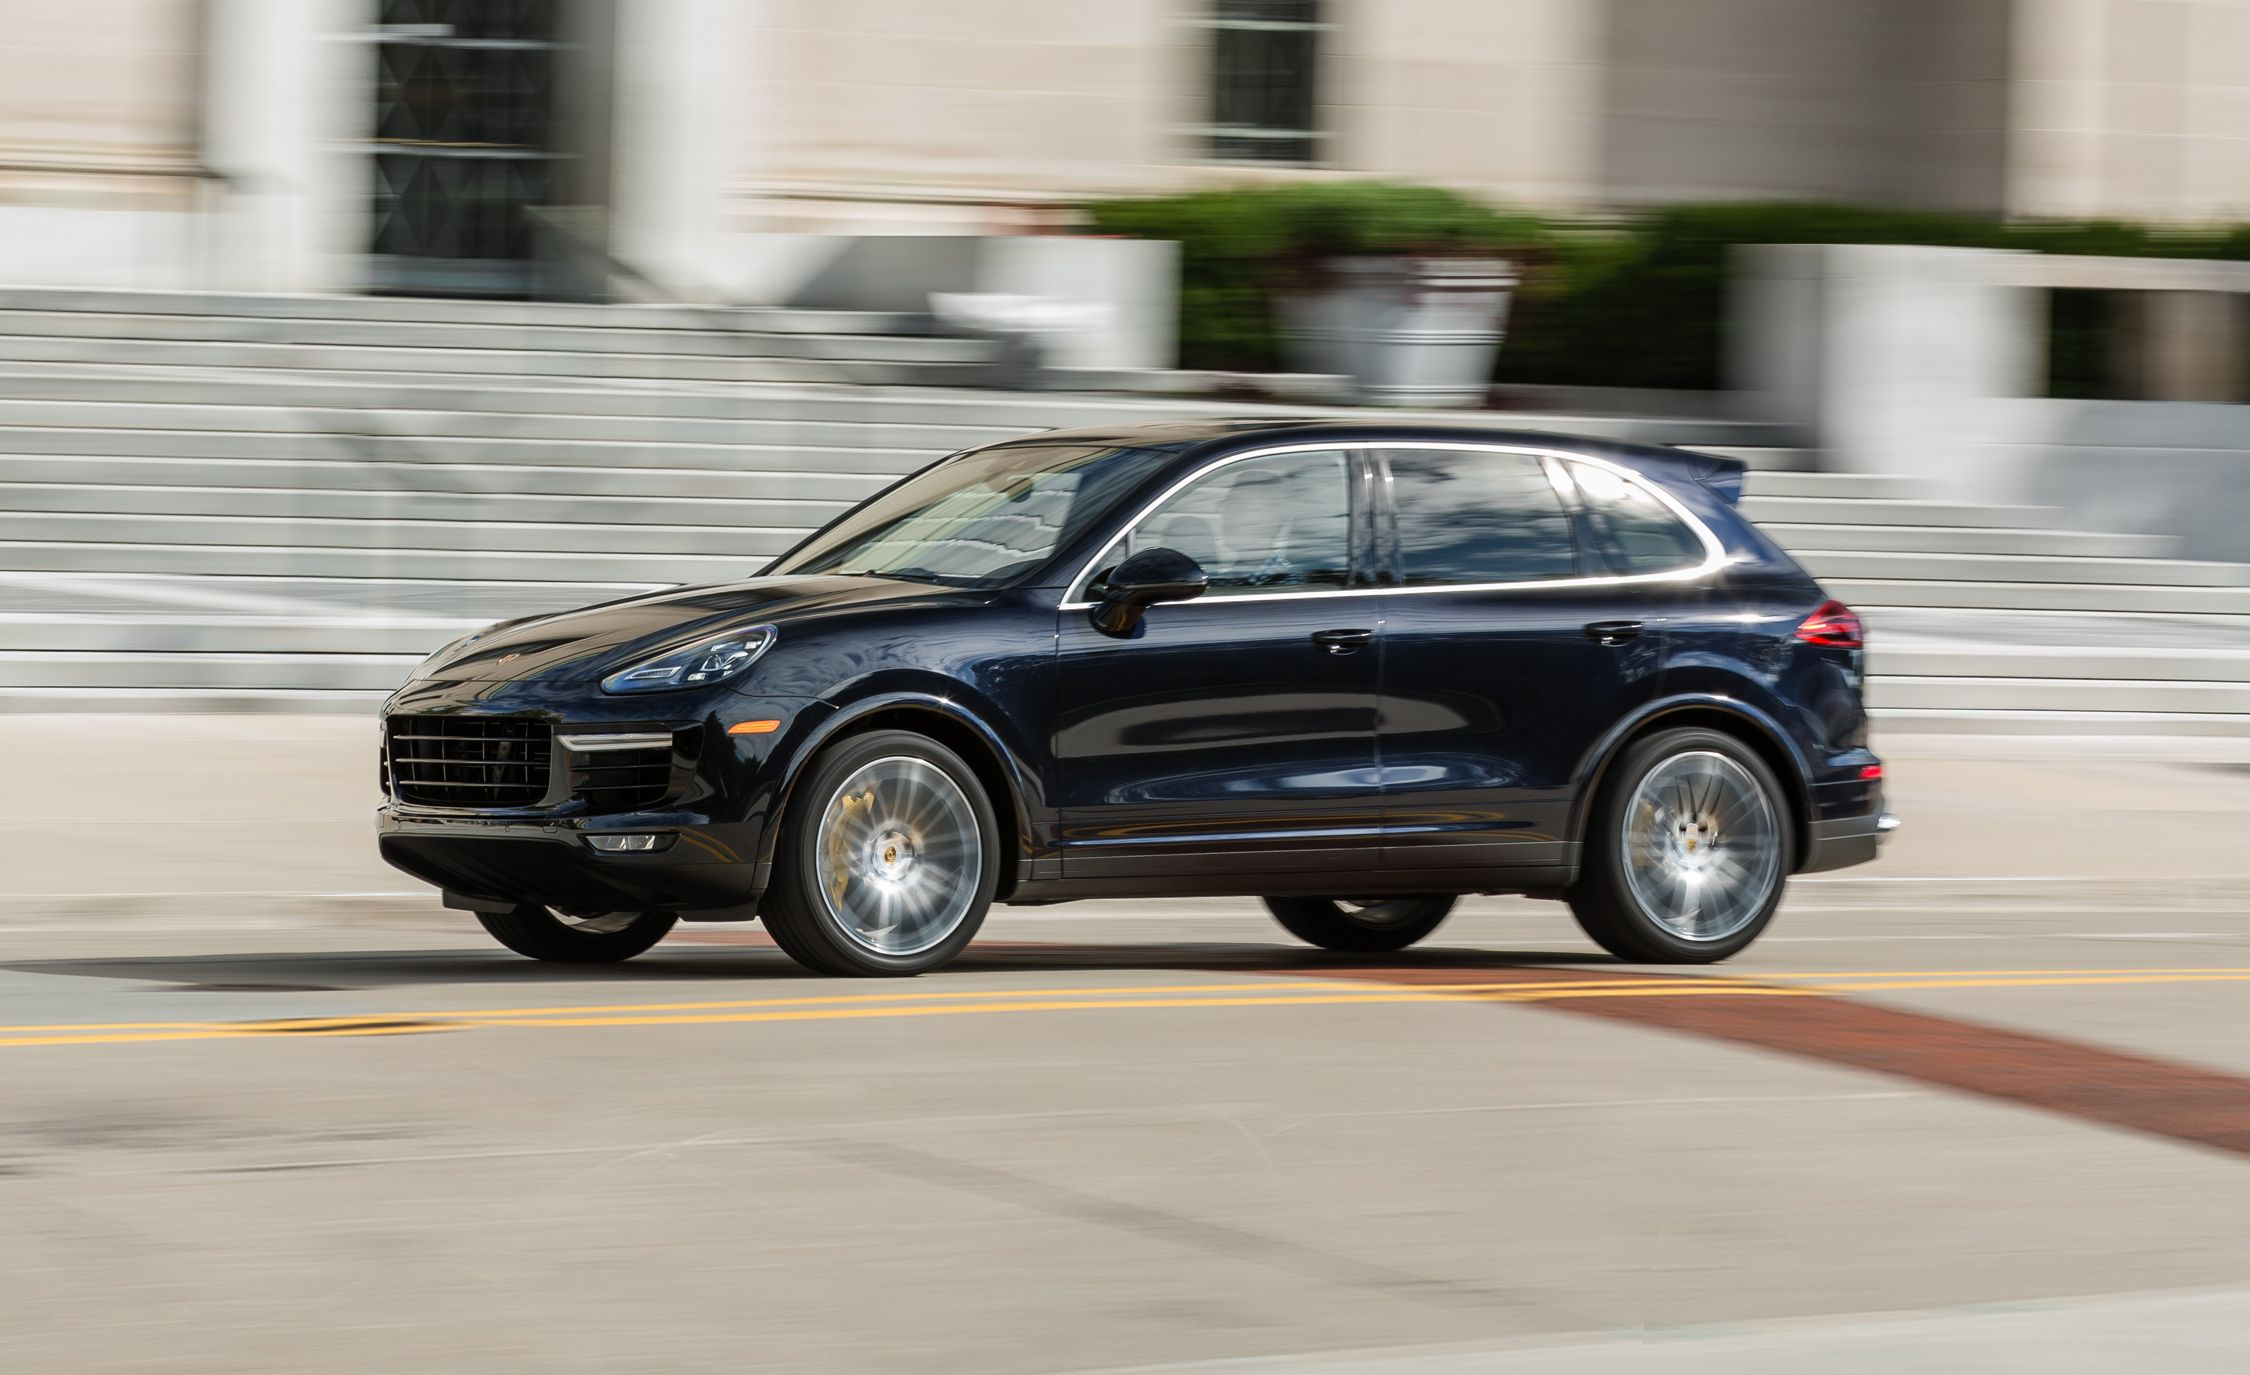 2017 Porsche Cayenne Turbo S In Depth Model Review Car And Driver